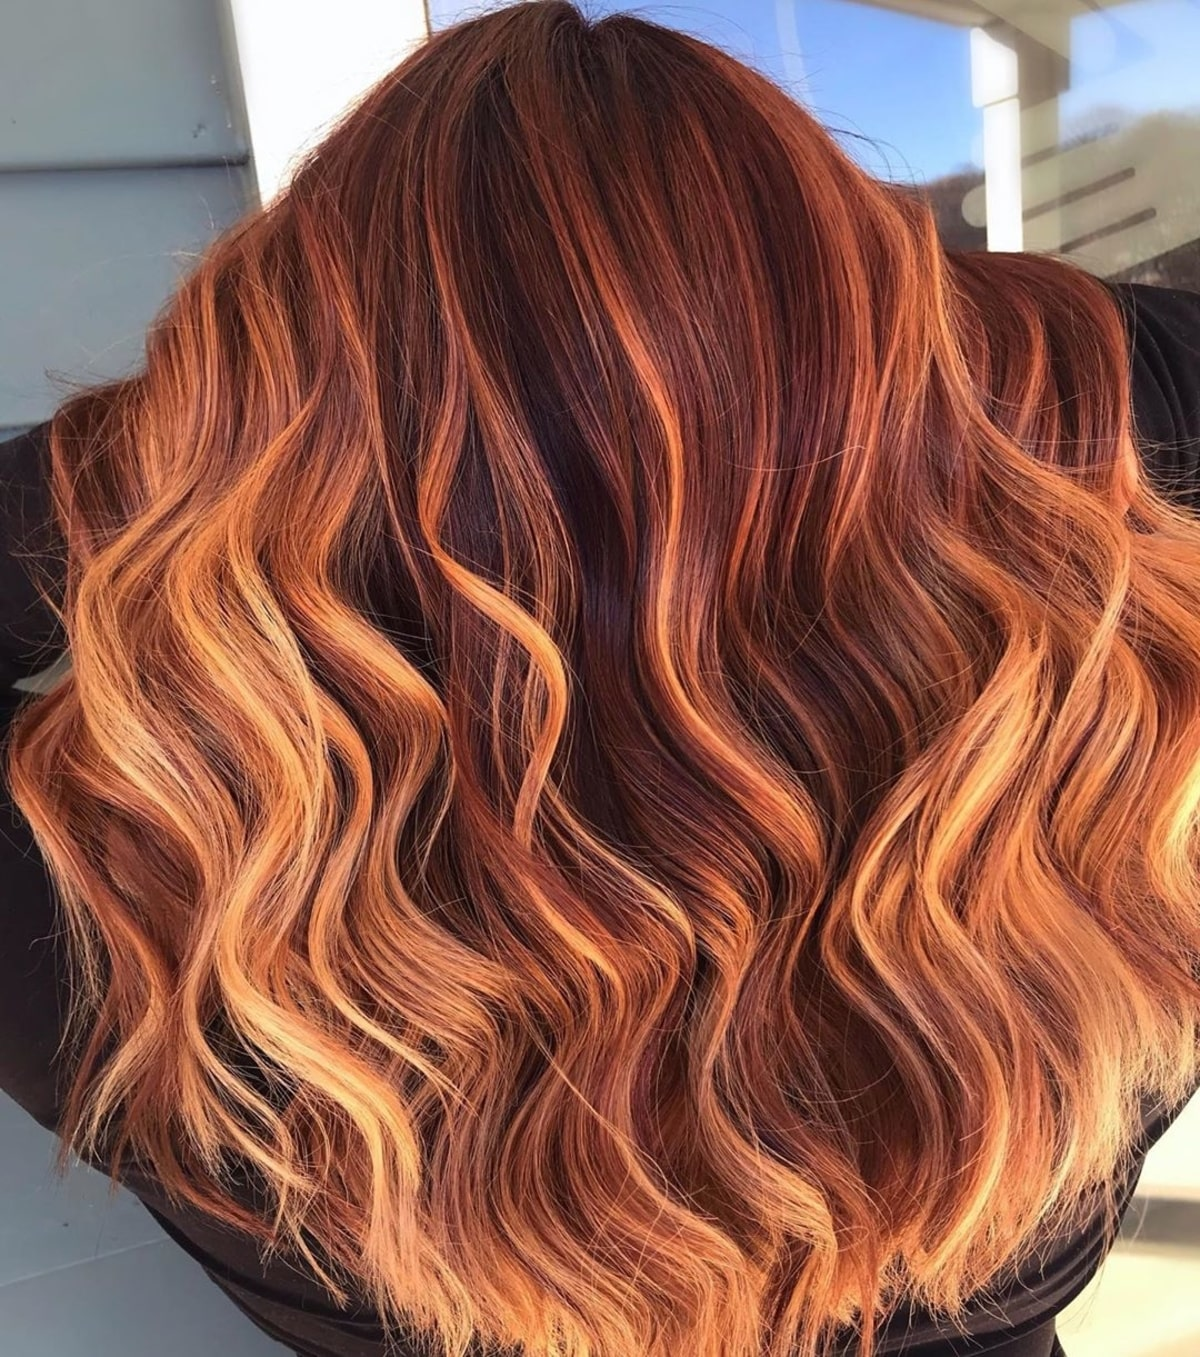 Fire Engine Red Hair With Blonde Highlights